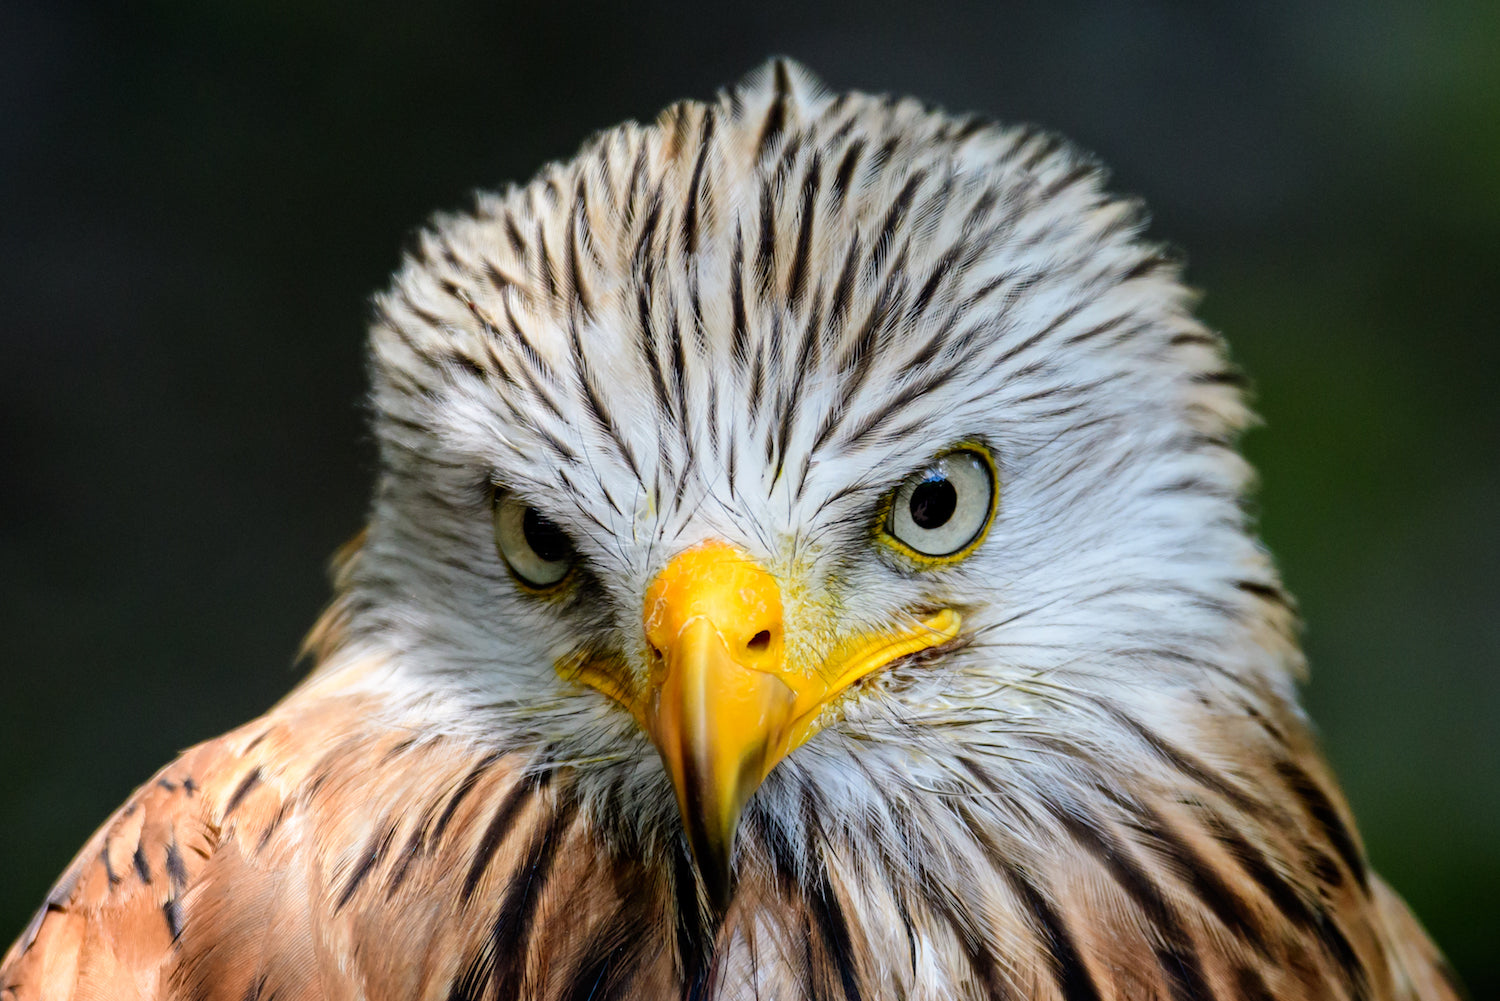 Photographic Training On Location - Huxley's Birds of Prey - Capturing Action